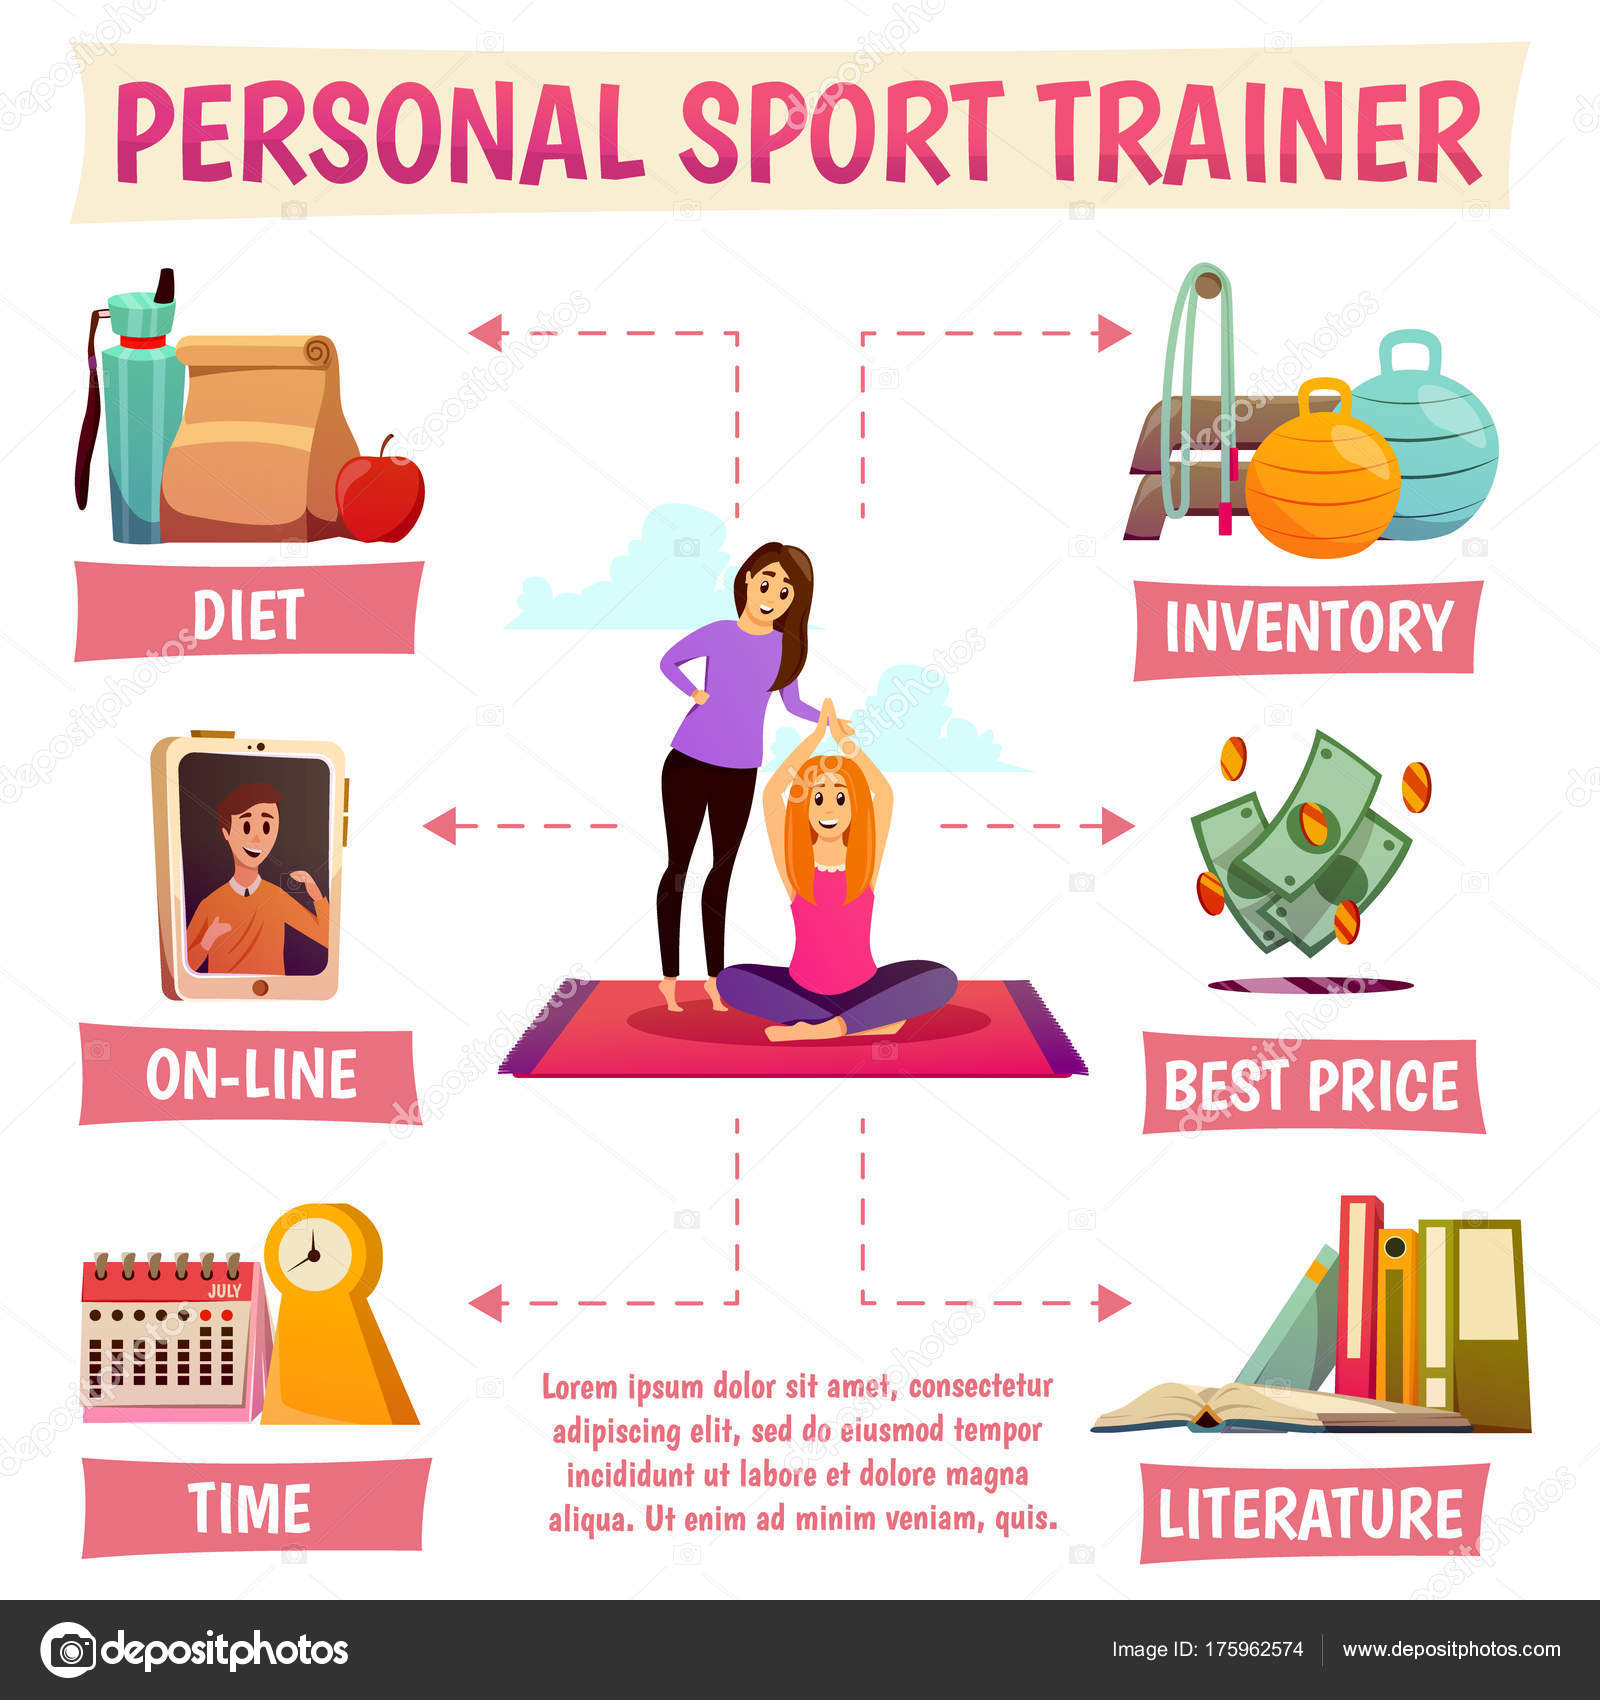 Personal sport trainer flowchart stock vector macrovector personal sport trainer flowchart including yoga with instructor diet online help equipment literature price vector illustration vector by macrovector geenschuldenfo Choice Image